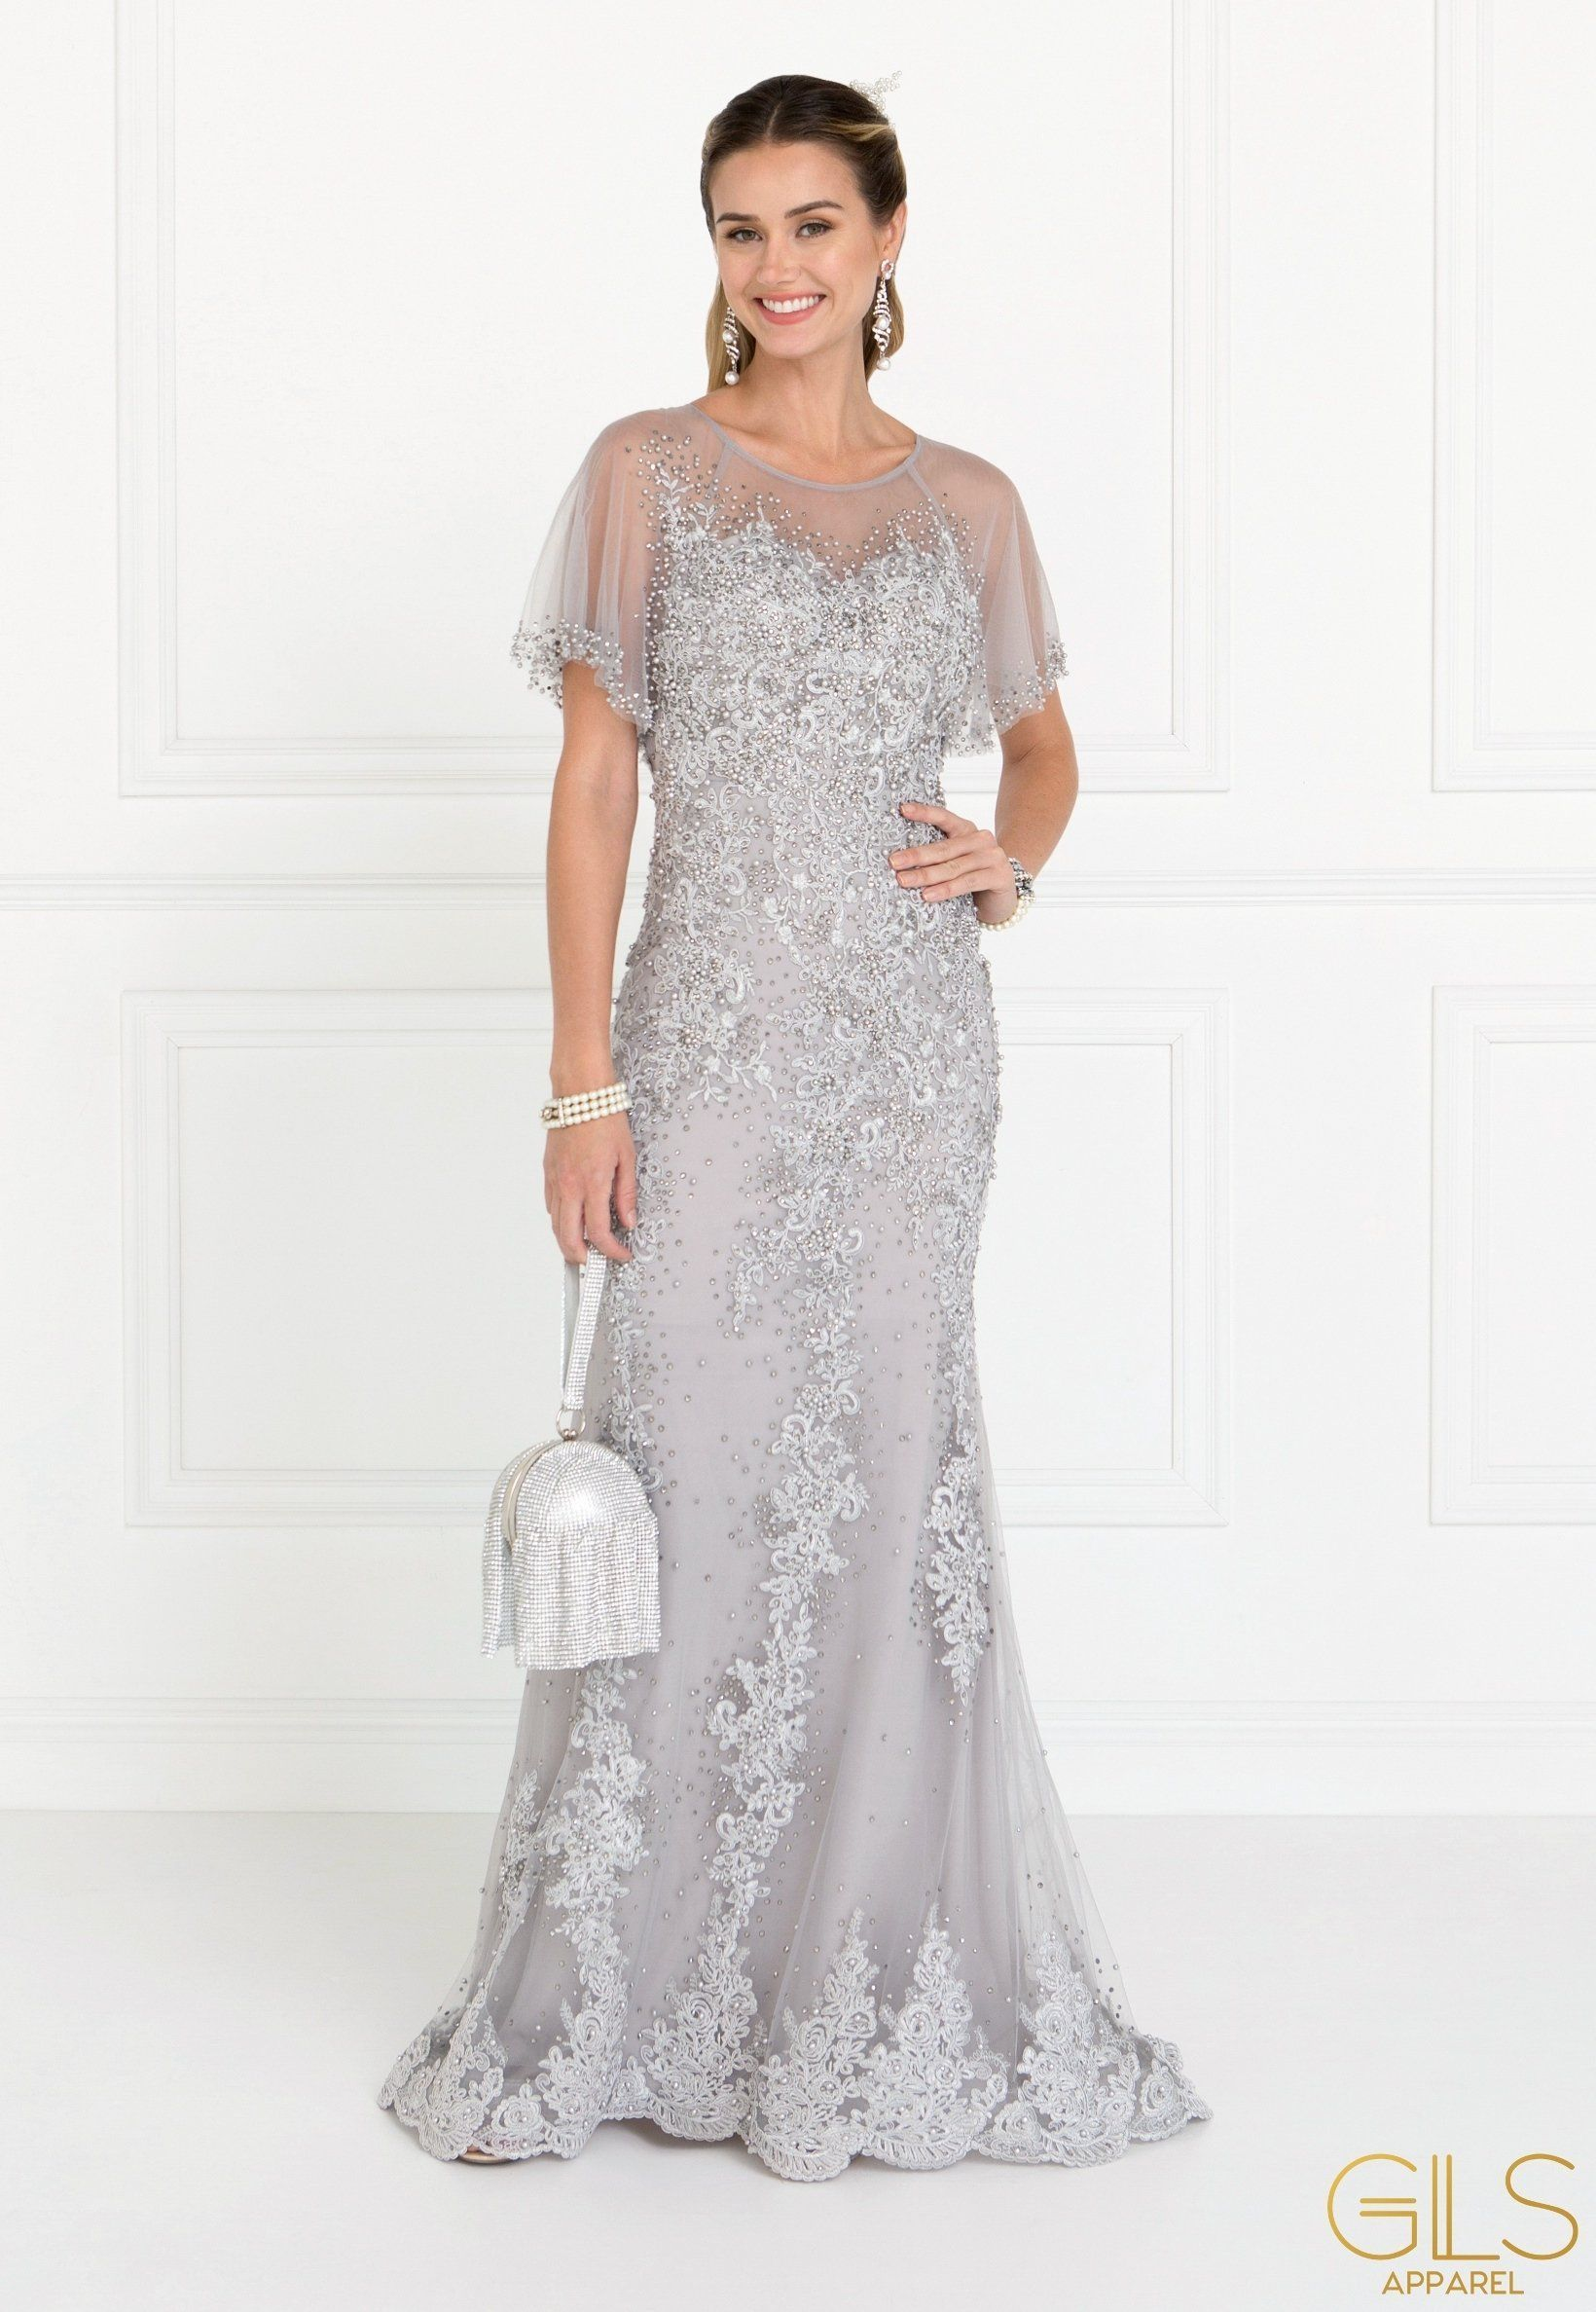 4a78a0266175 Embroidered Long Pink Cape Dress by Elizabeth K GL1585 in 2019 ...